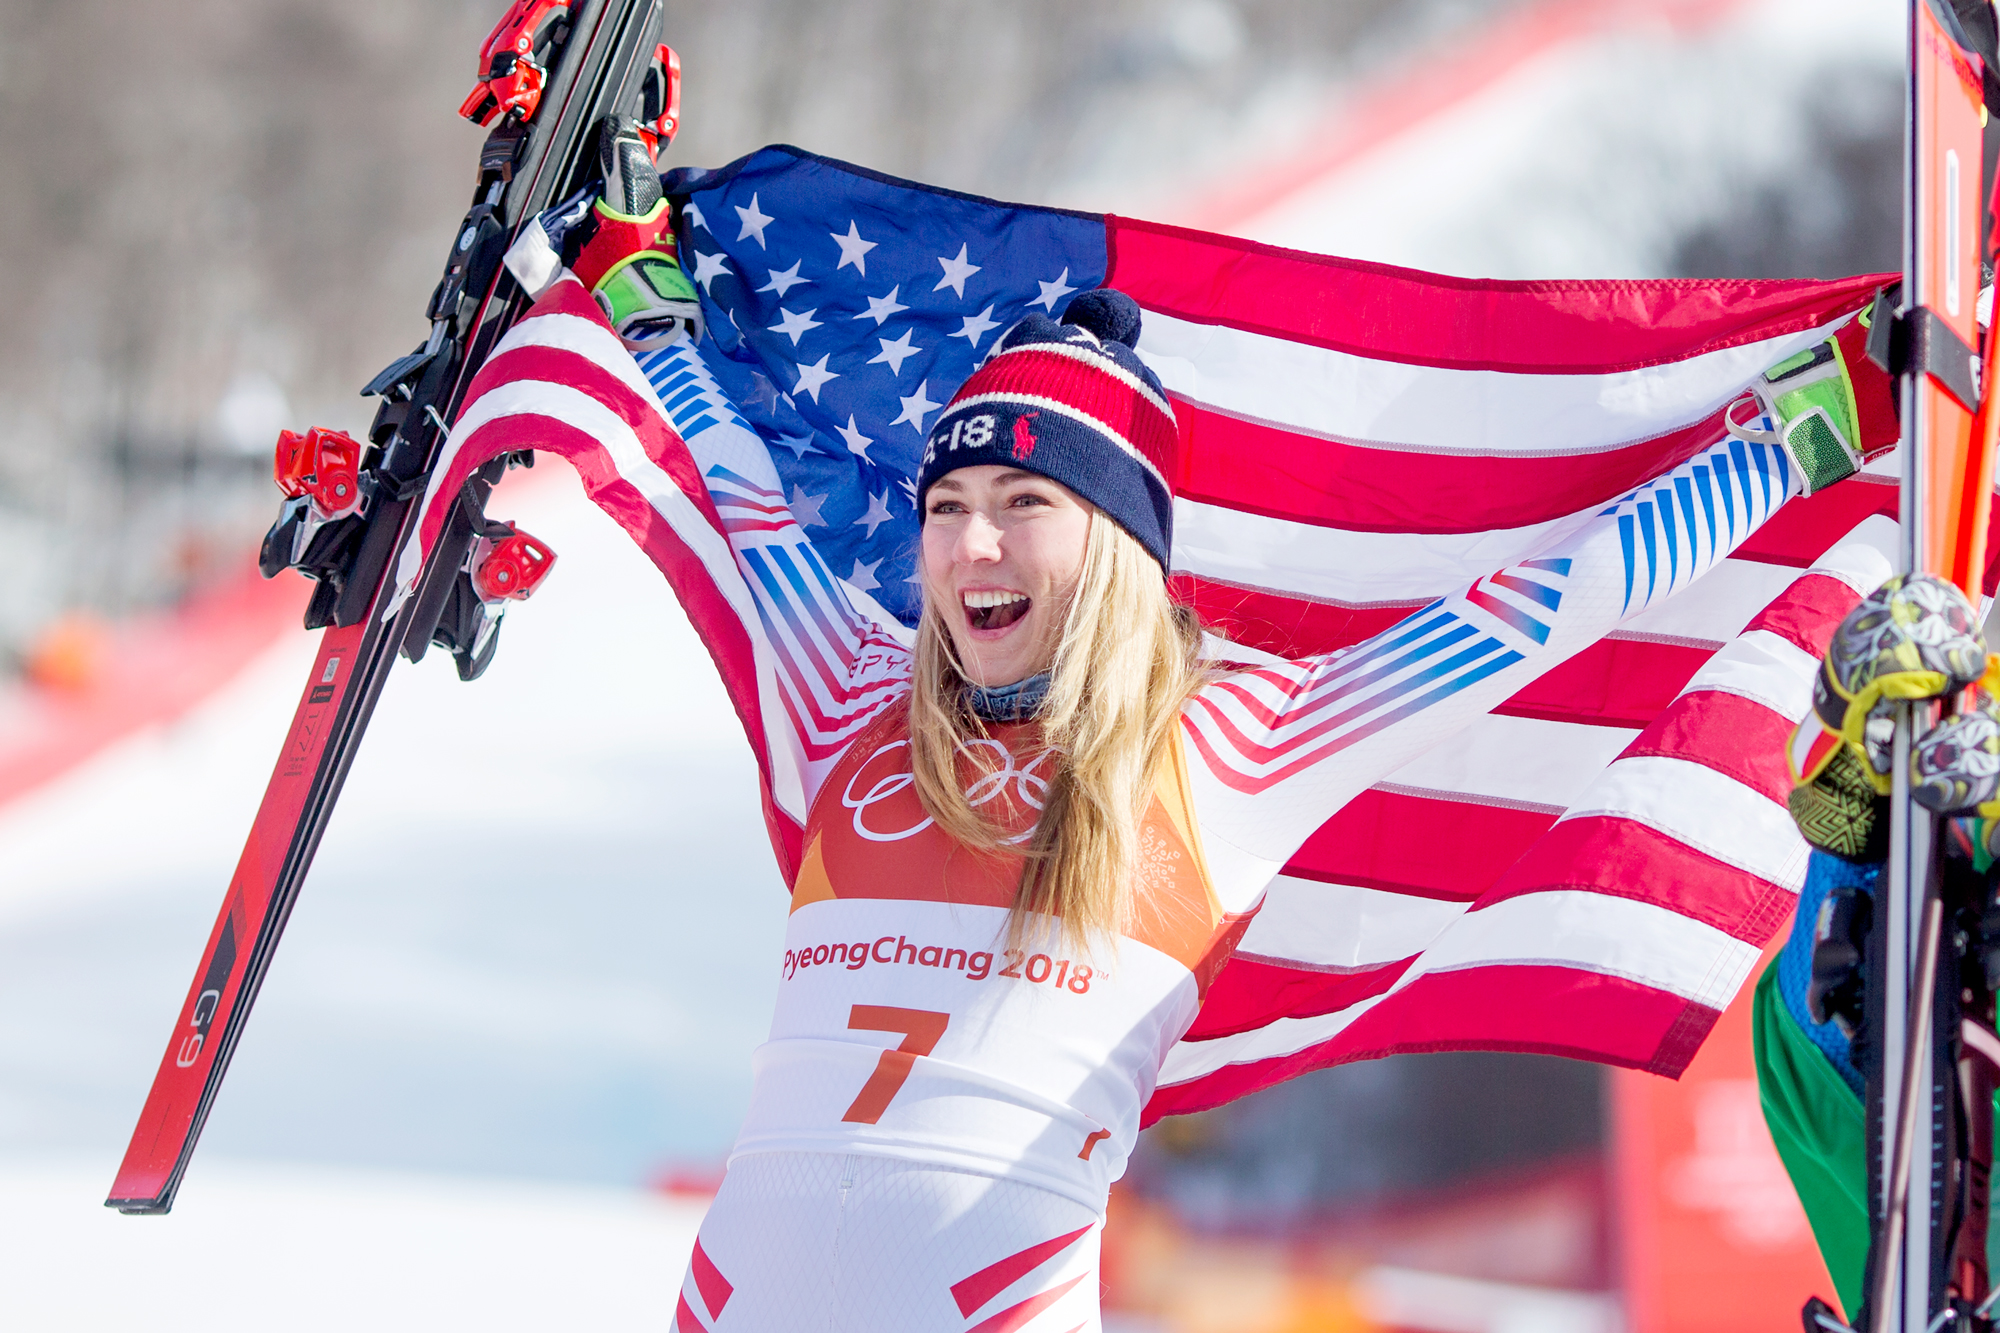 Mikaela Shiffrin Kicks Off Her Arrival at 2018 Winter Olympics with Gold